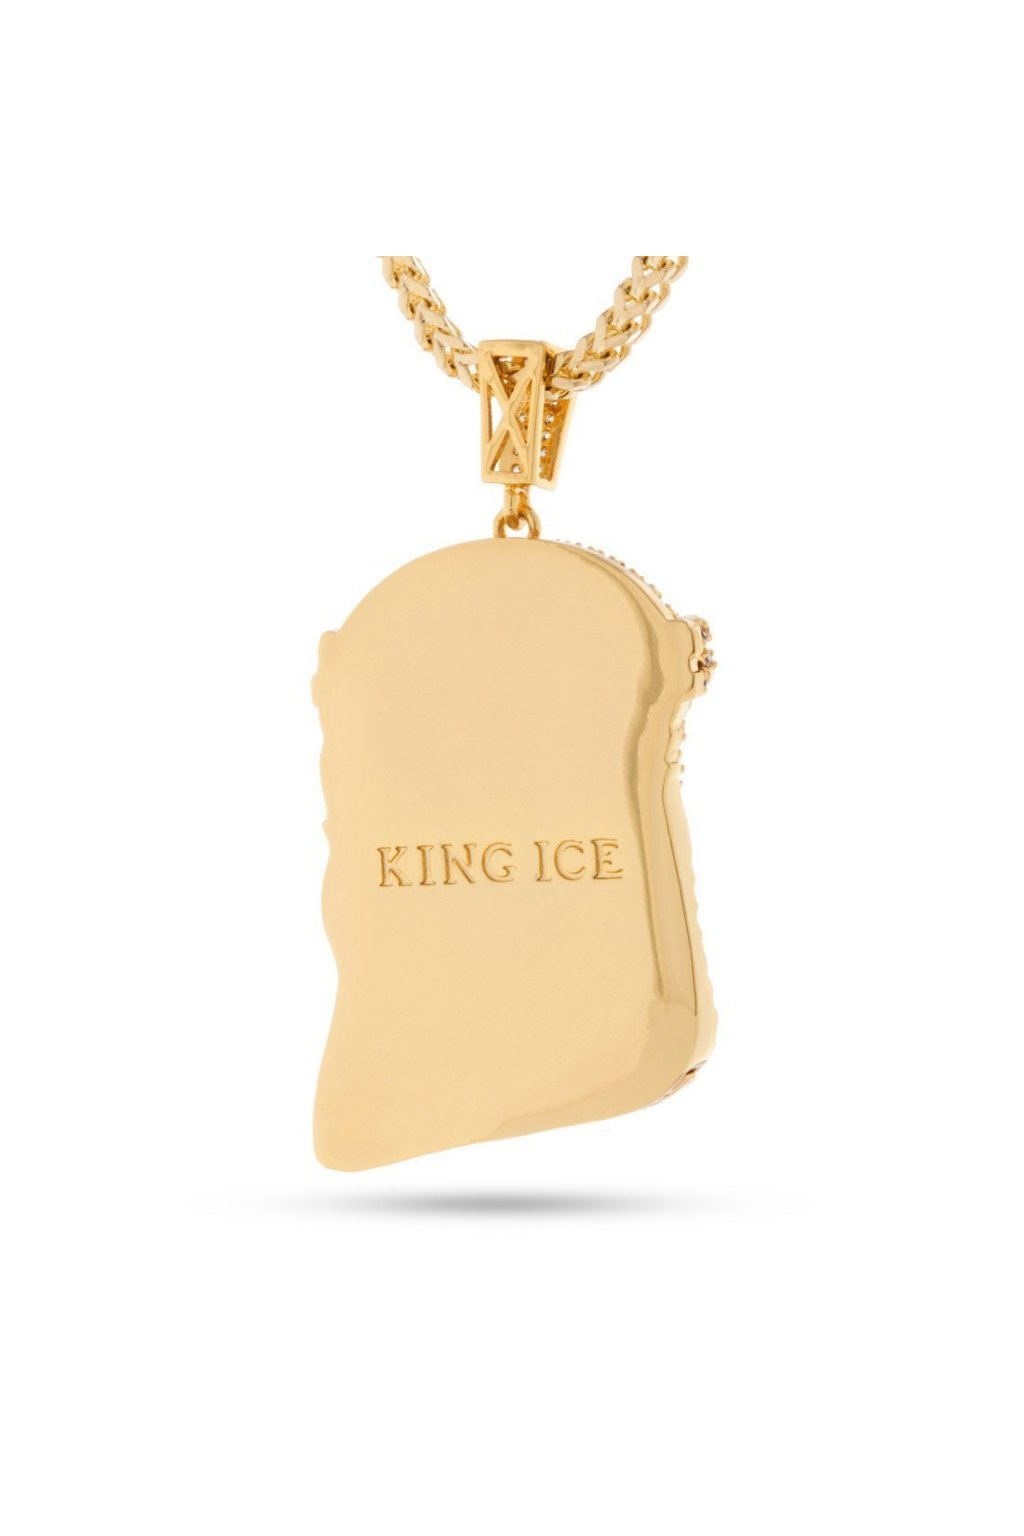 ... NKX10779 King Ice 14k Yellow Gold CZ Jesus Piece Necklace 4 fbfb73f9  fb1c 42e5 801c 904edc898aca ... b53d080188d